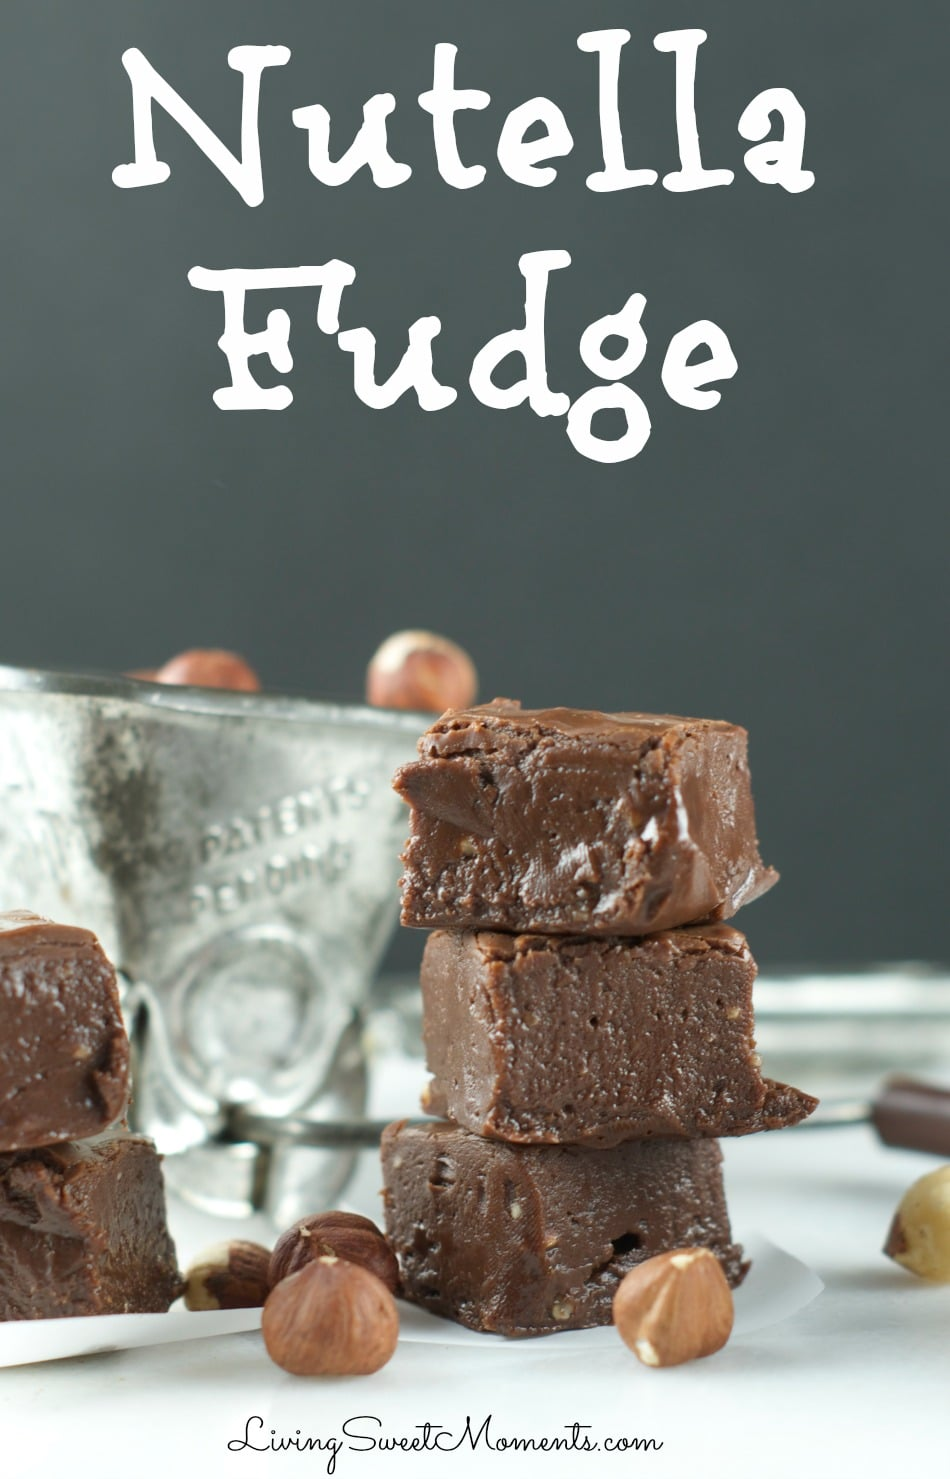 This nutty Nutella Fudge Recipe is easy to make and decadent. Enjoy a soft, chewy texture that melts in your mouth. The perfect gluten free Holiday dessert.